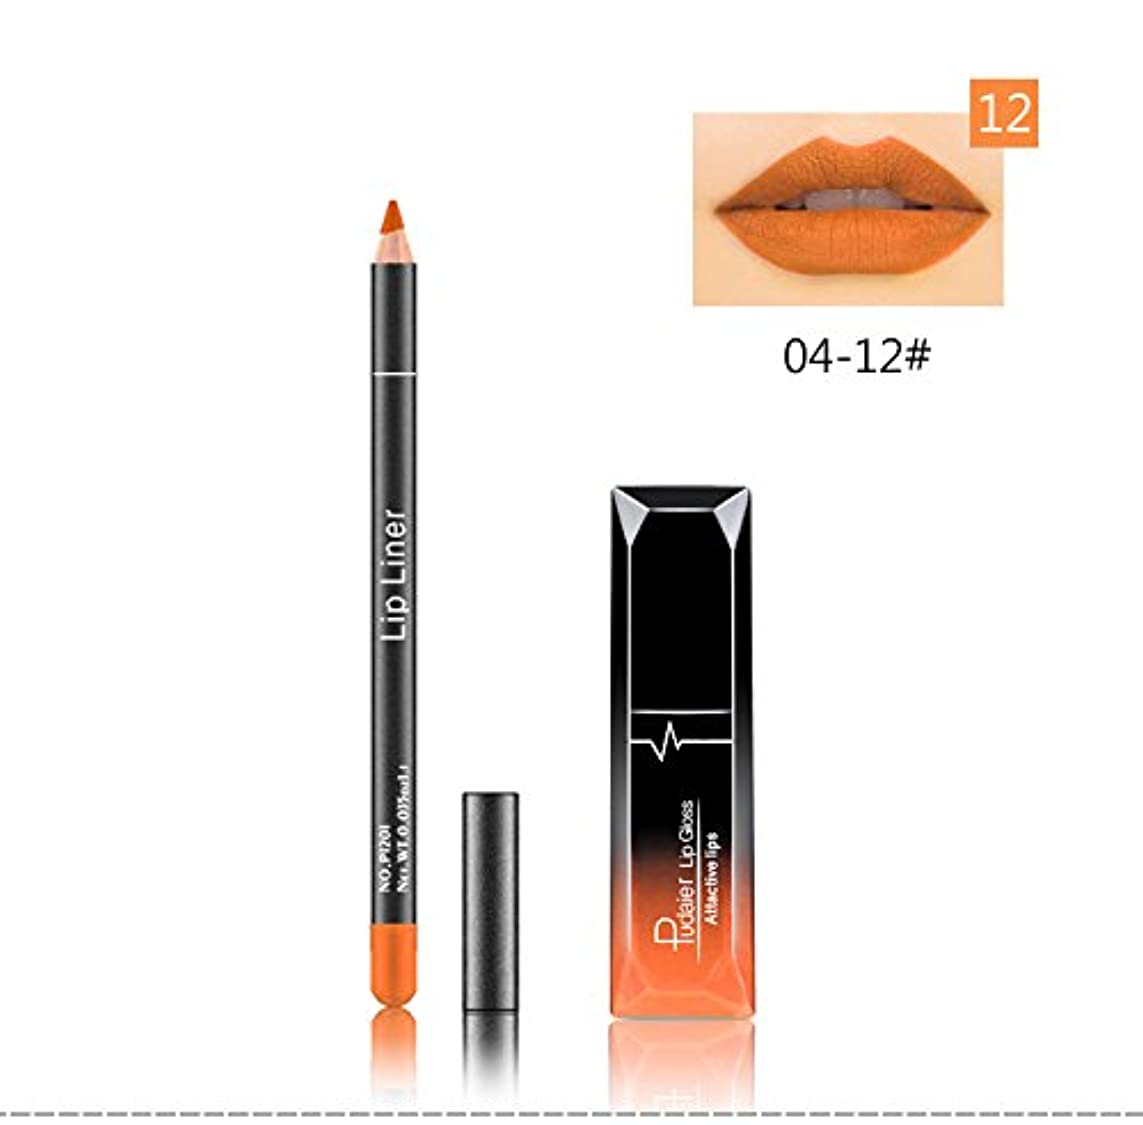 論争の的浸したアラブ人(12) Pudaier 1pc Matte Liquid Lipstick Cosmetic Lip Kit+ 1 Pc Nude Lip Liner Pencil MakeUp Set Waterproof Long Lasting Lipstick Gfit